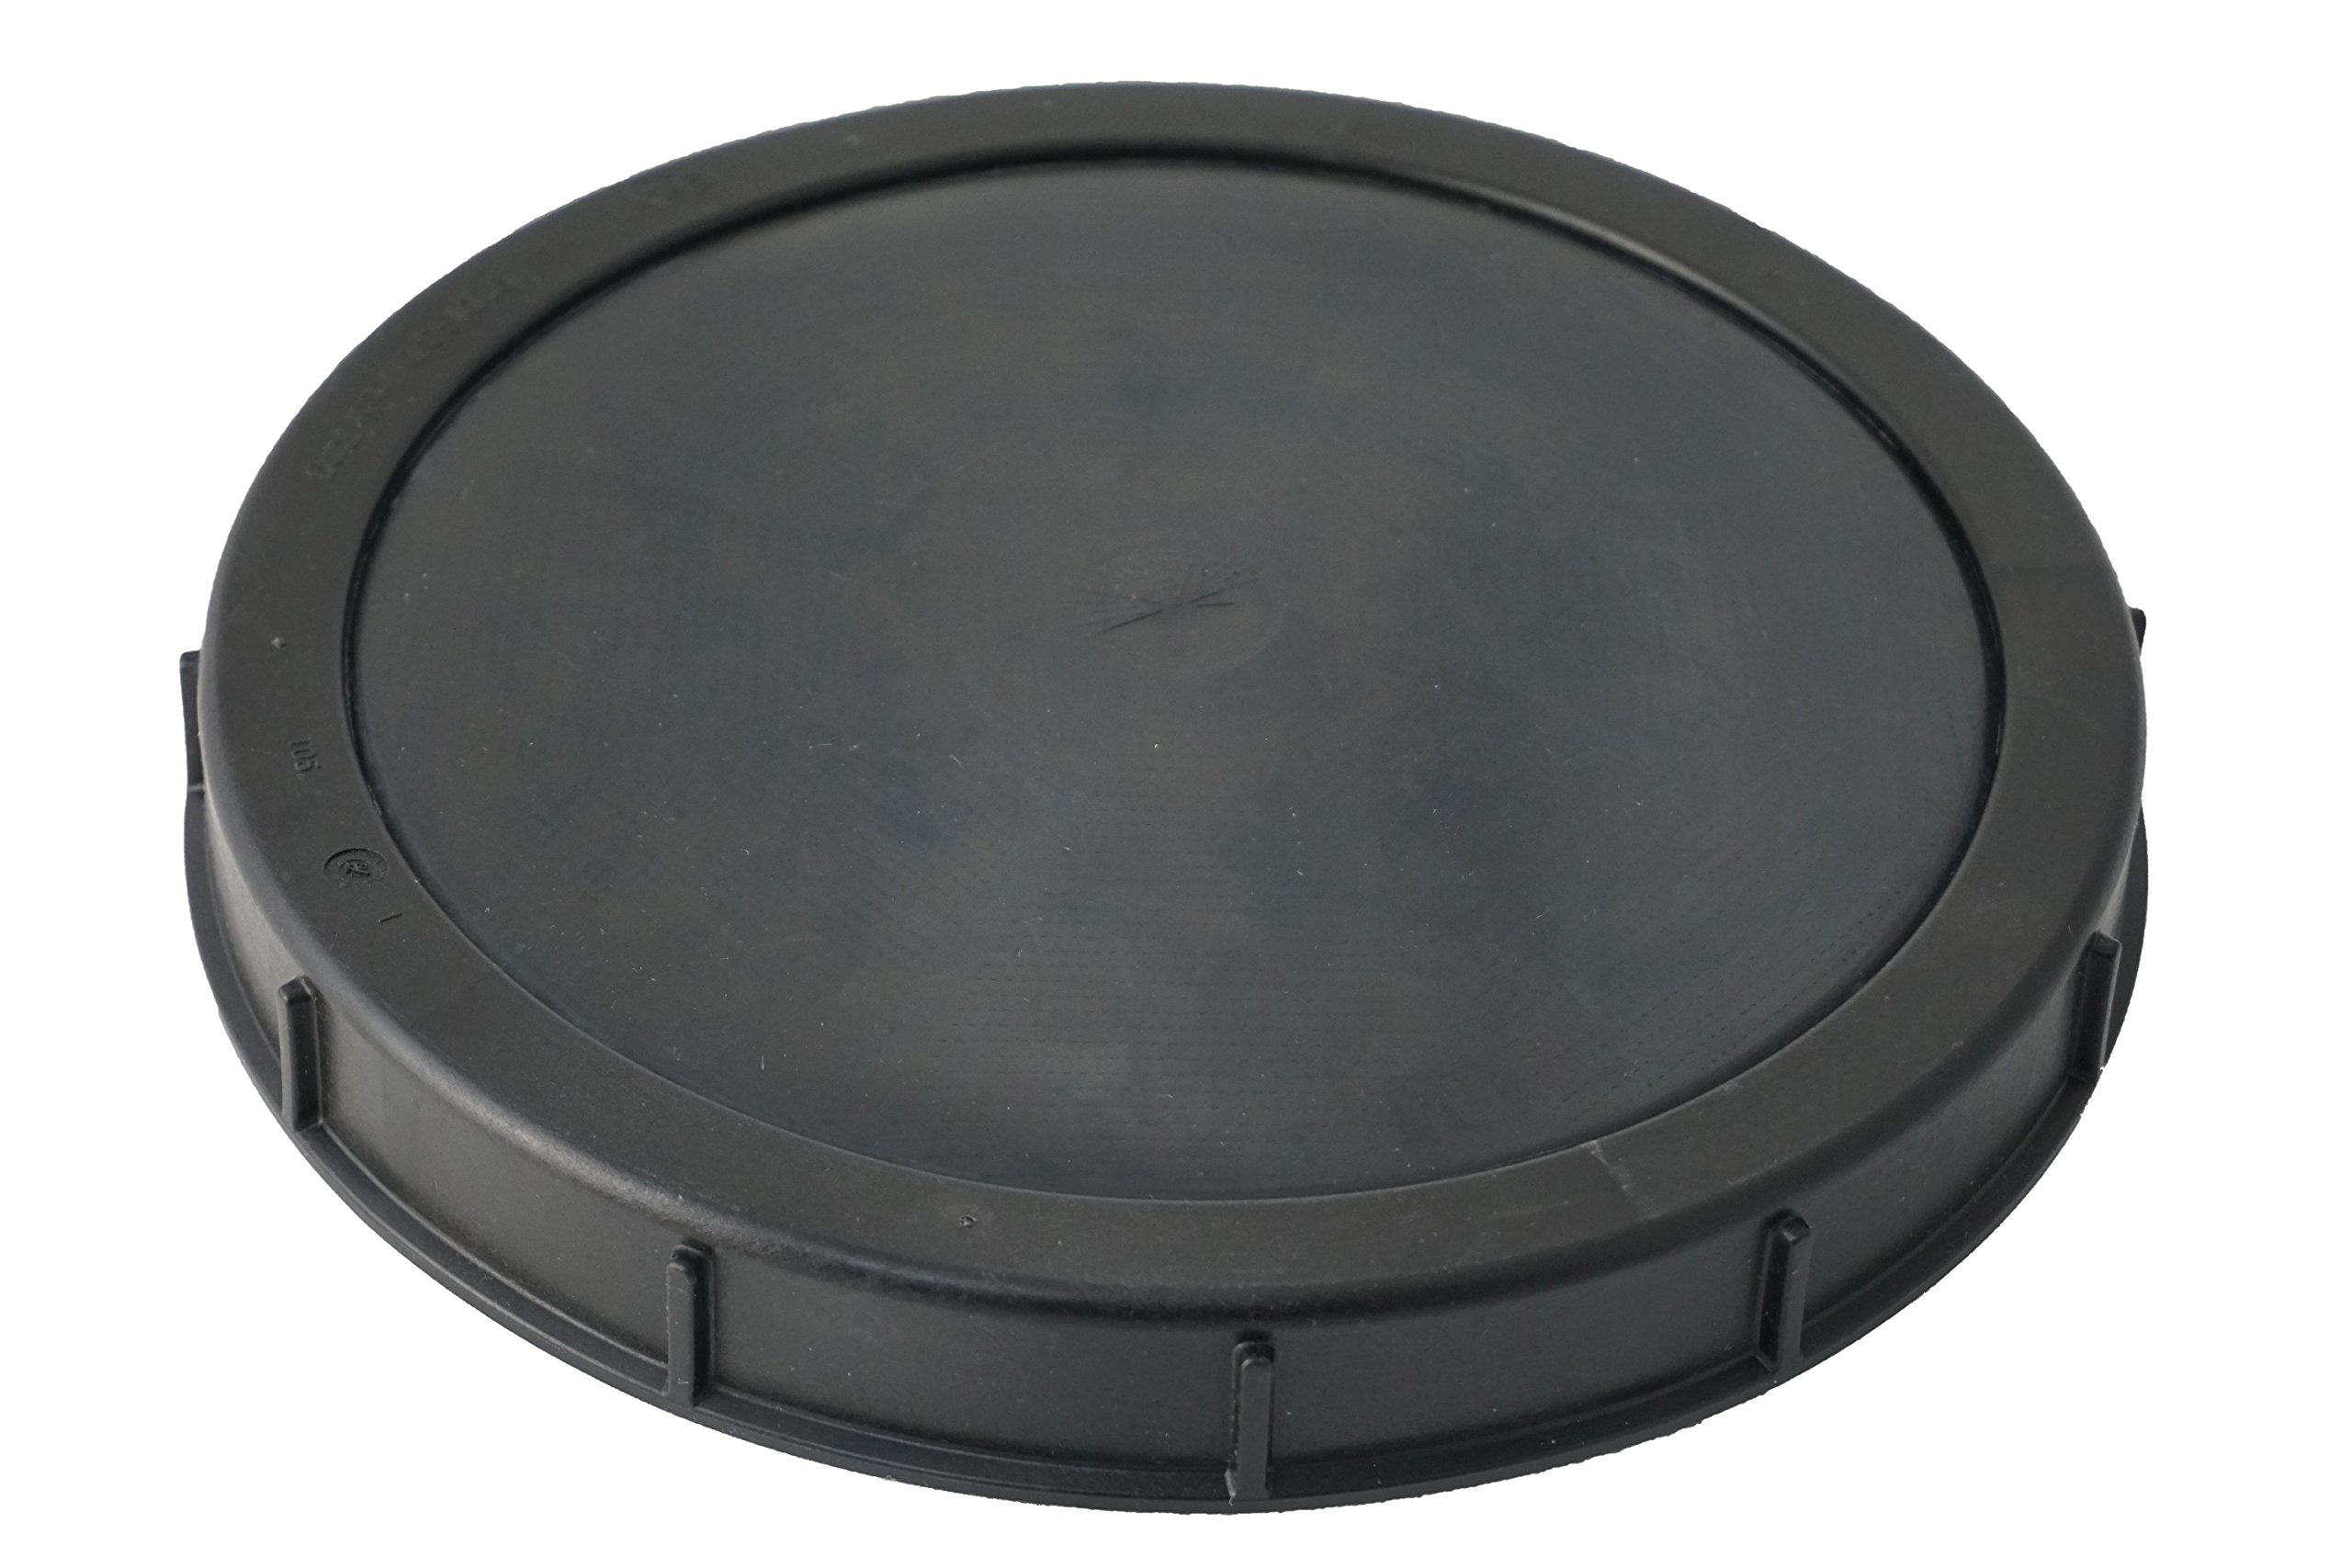 EBDM Rubber Membrane Pond Air Diffuser Disc - Replacement for Pond Aerator Air Stone (9 inch)